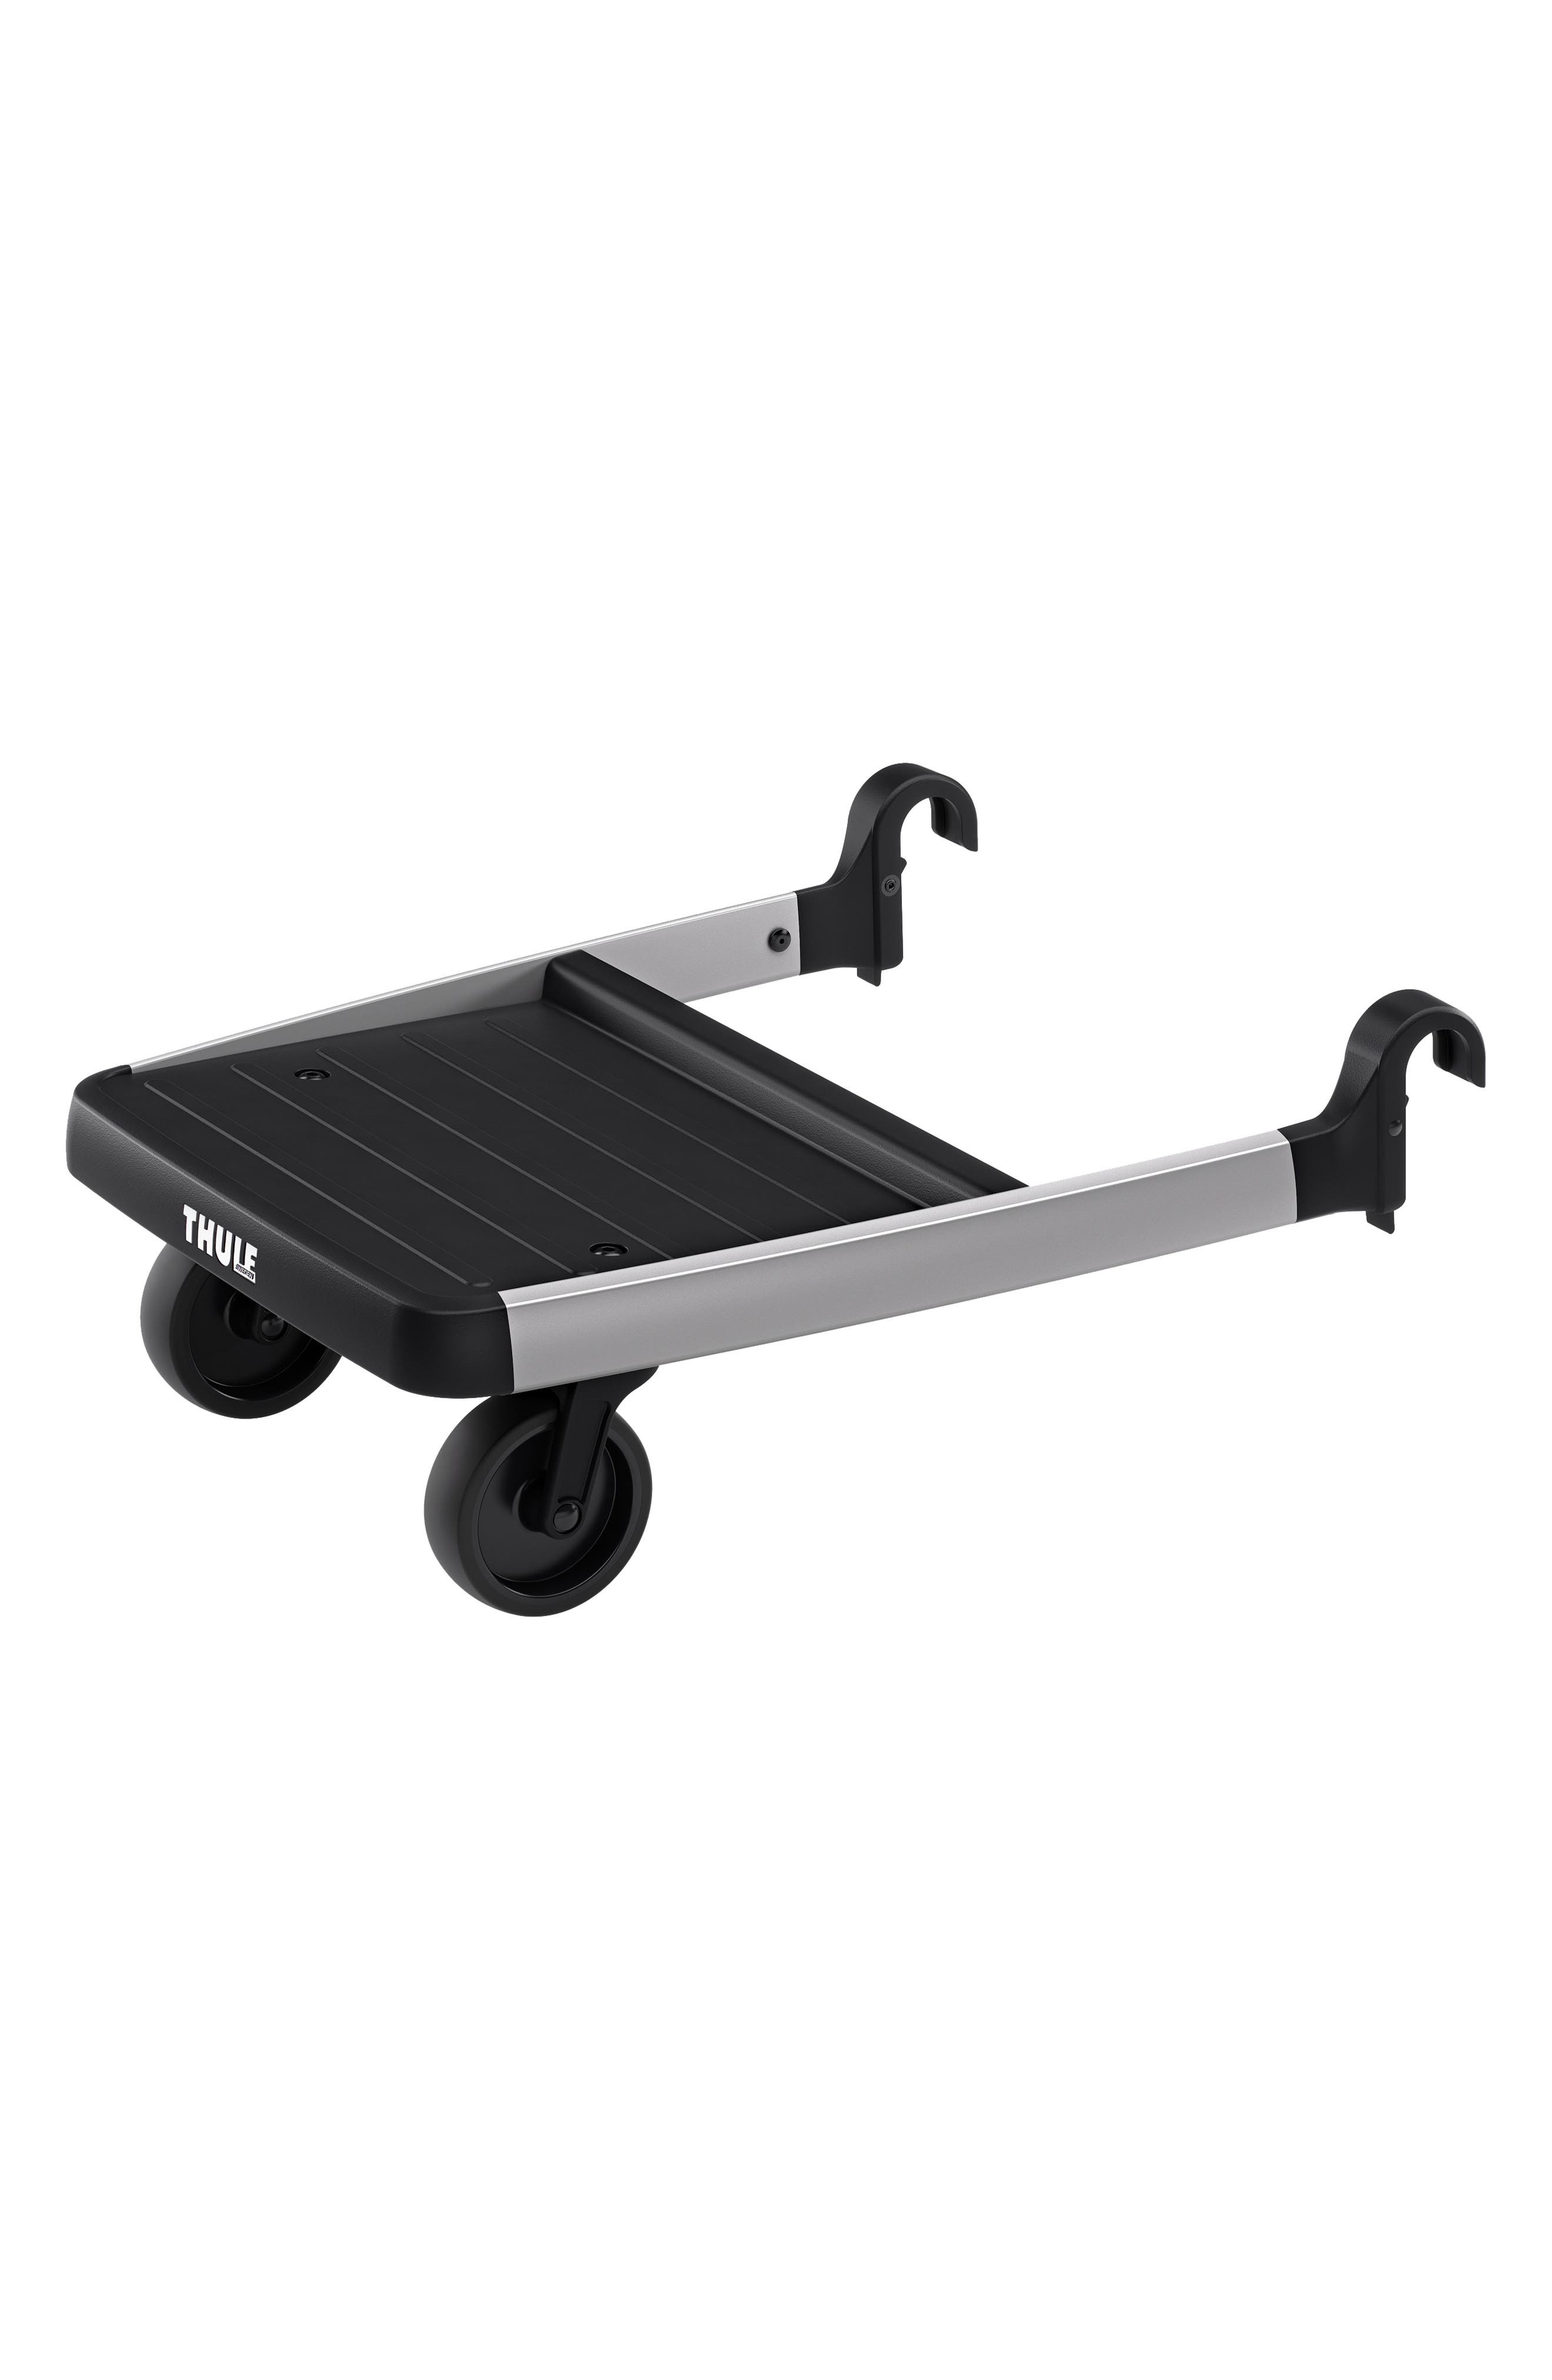 Glider Board Attachment for Thule Sleek Stroller,                             Main thumbnail 1, color,                             BLACK/ SILVER